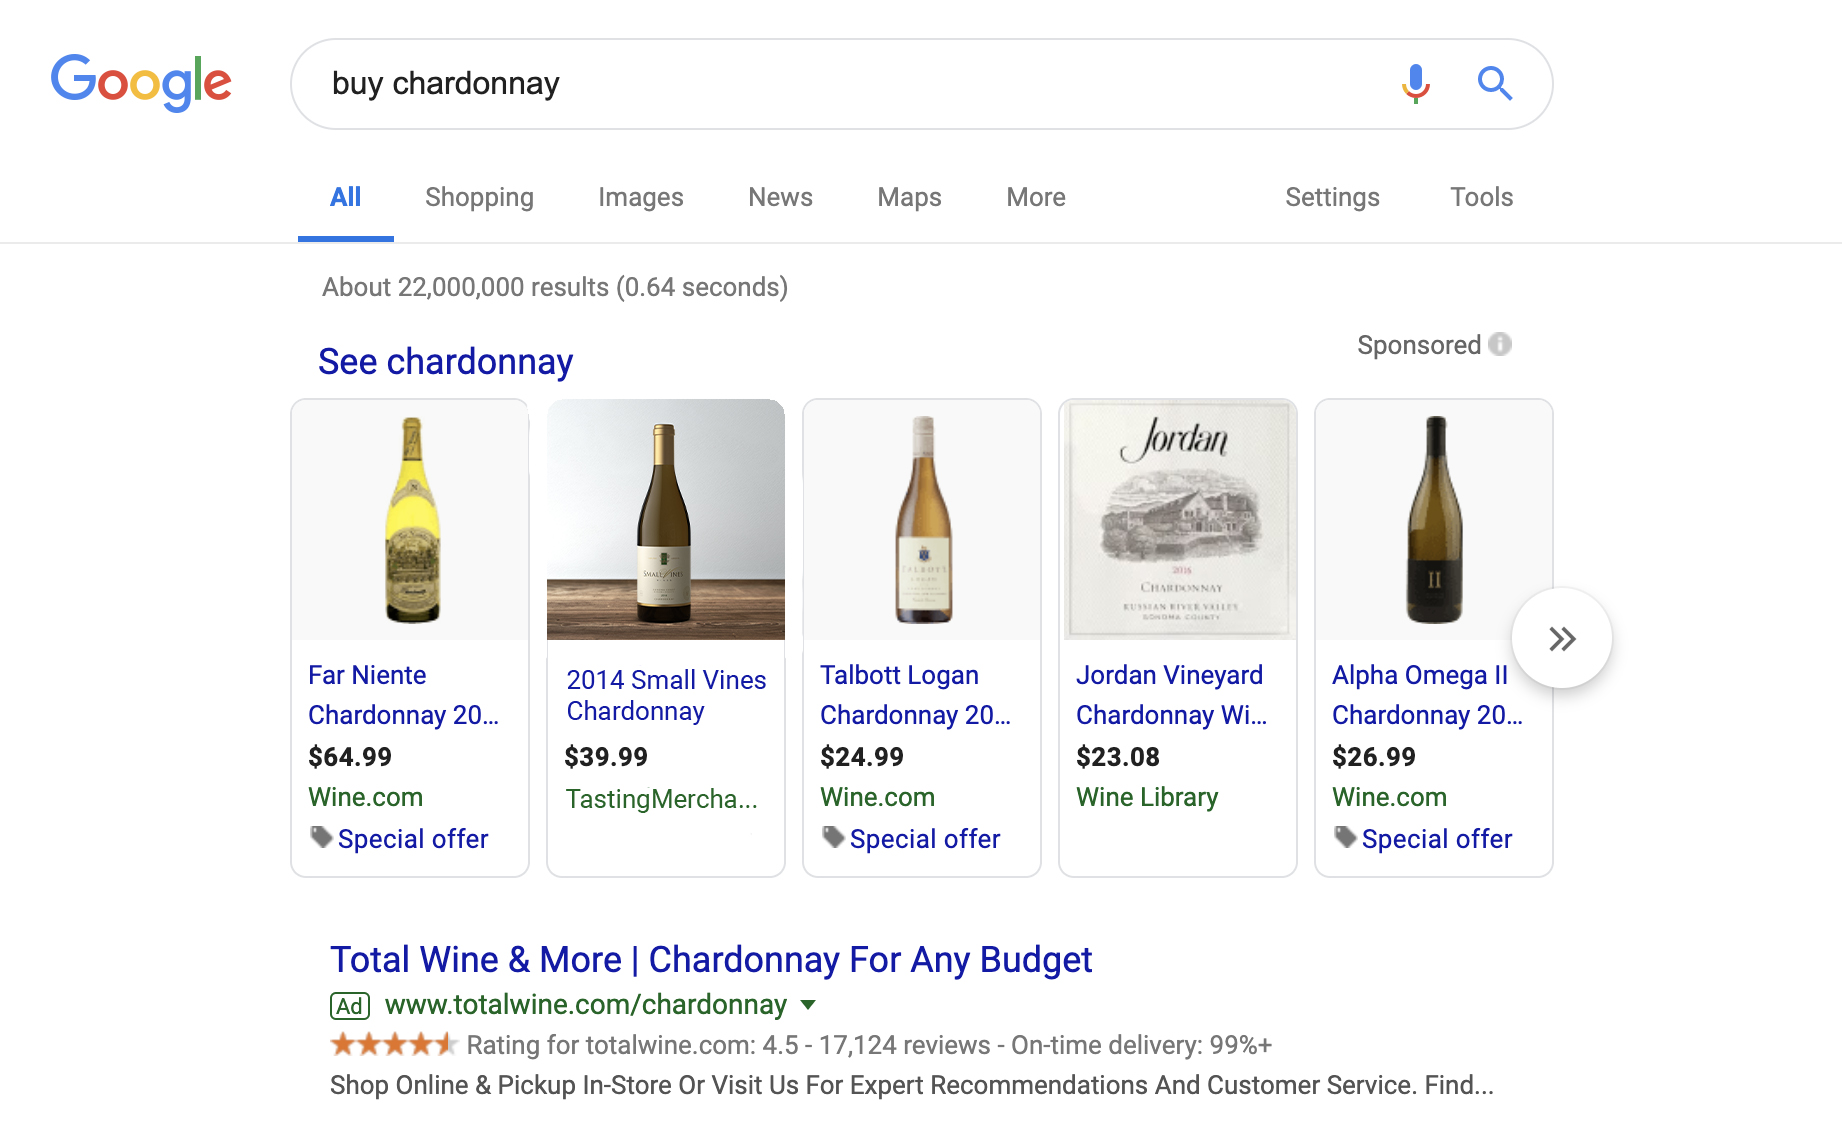 Example of Tasting Merchants Google Shopping Ad (second from left) for Small Vines Chardonnay. The creative features a beautiful lifestyle bottle shot via our friends at  Outshinery .